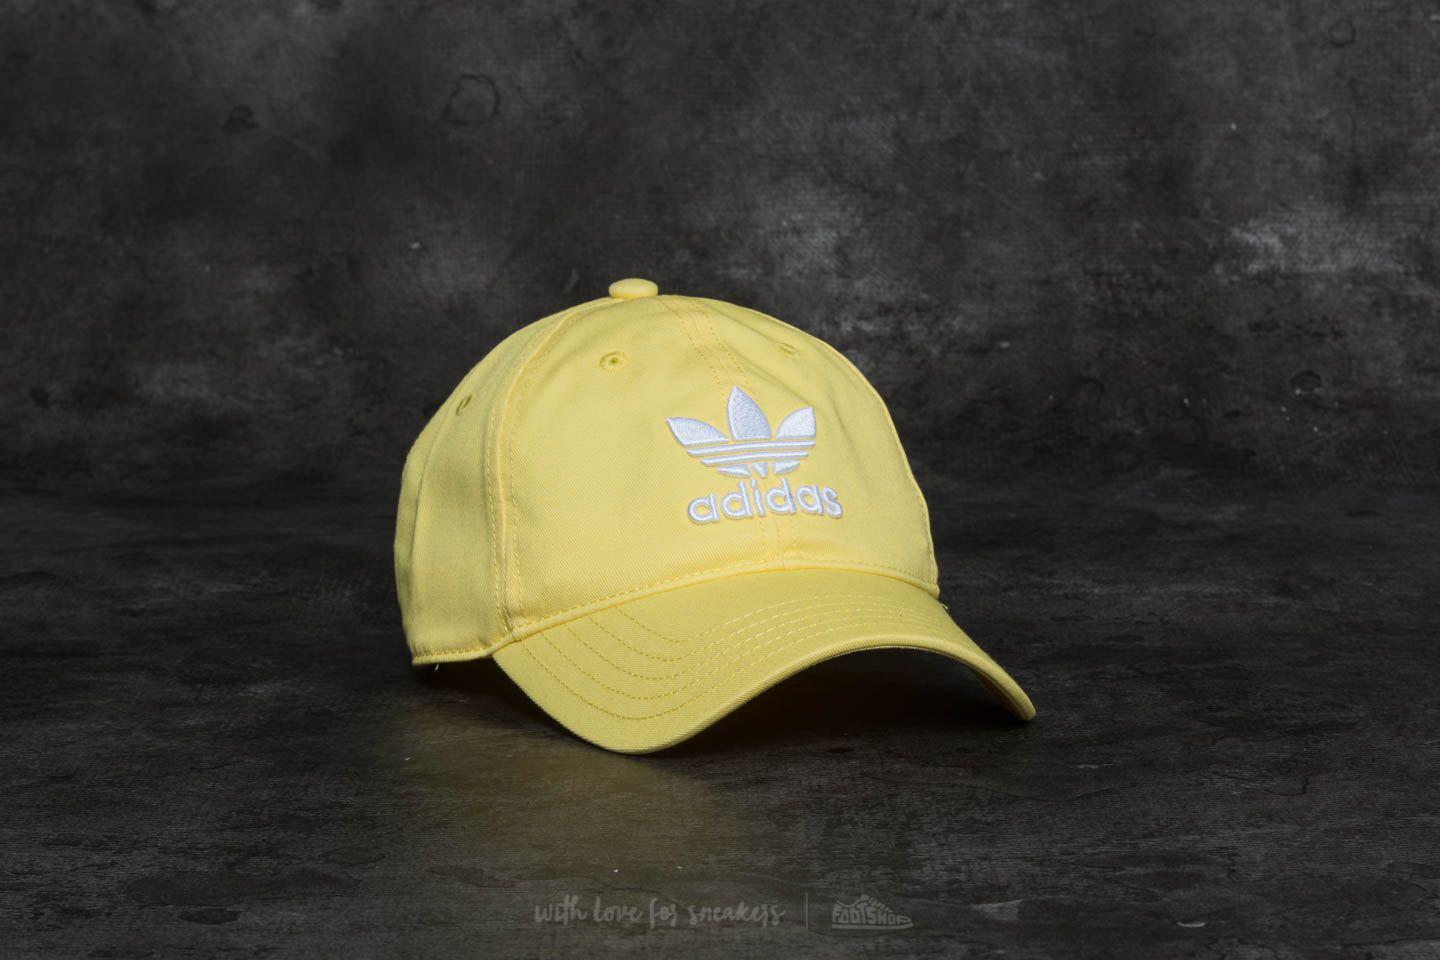 b341f7a8bab Lyst - adidas Originals Adidas Trefoil Cap Intense Lemon  White in ...